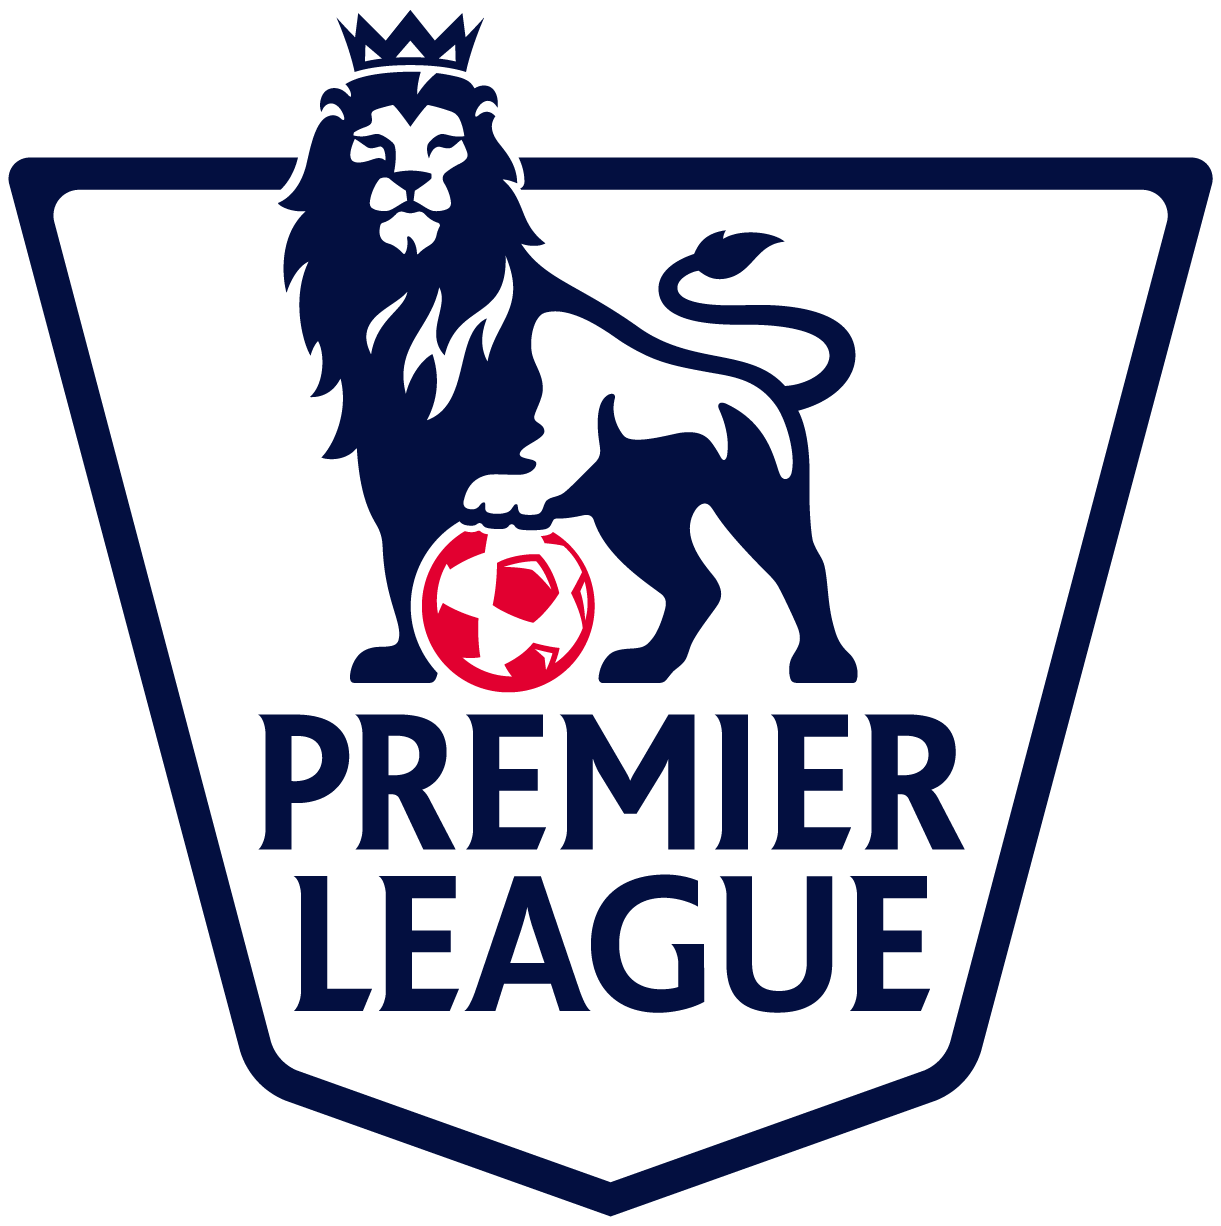 Premier League PREM logo